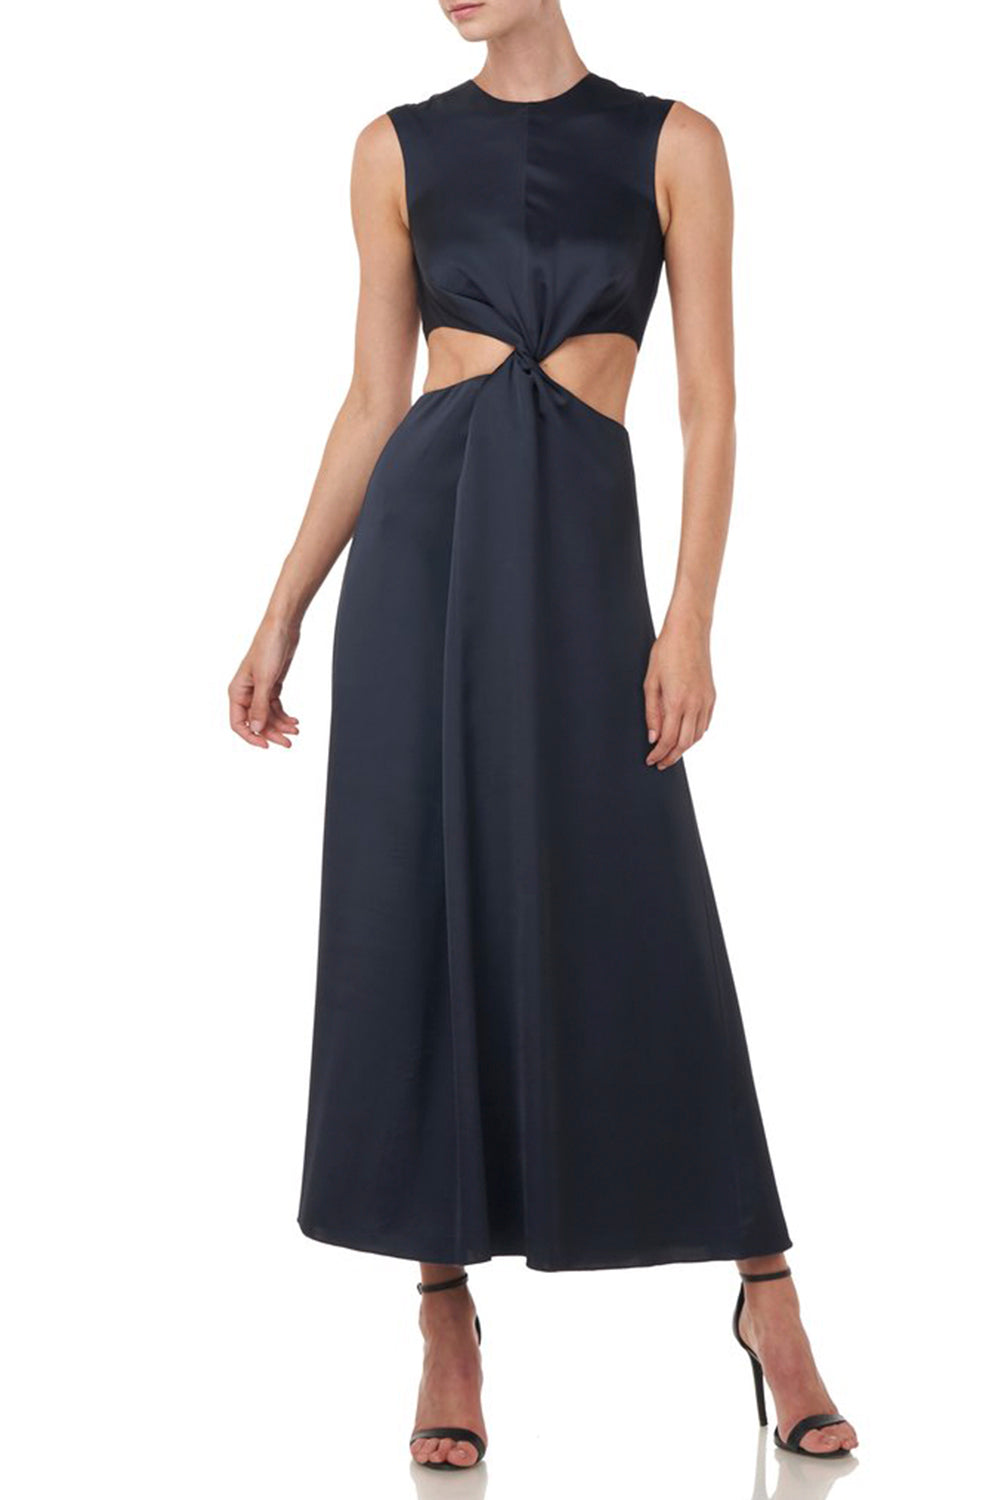 Inara Dress in Navy